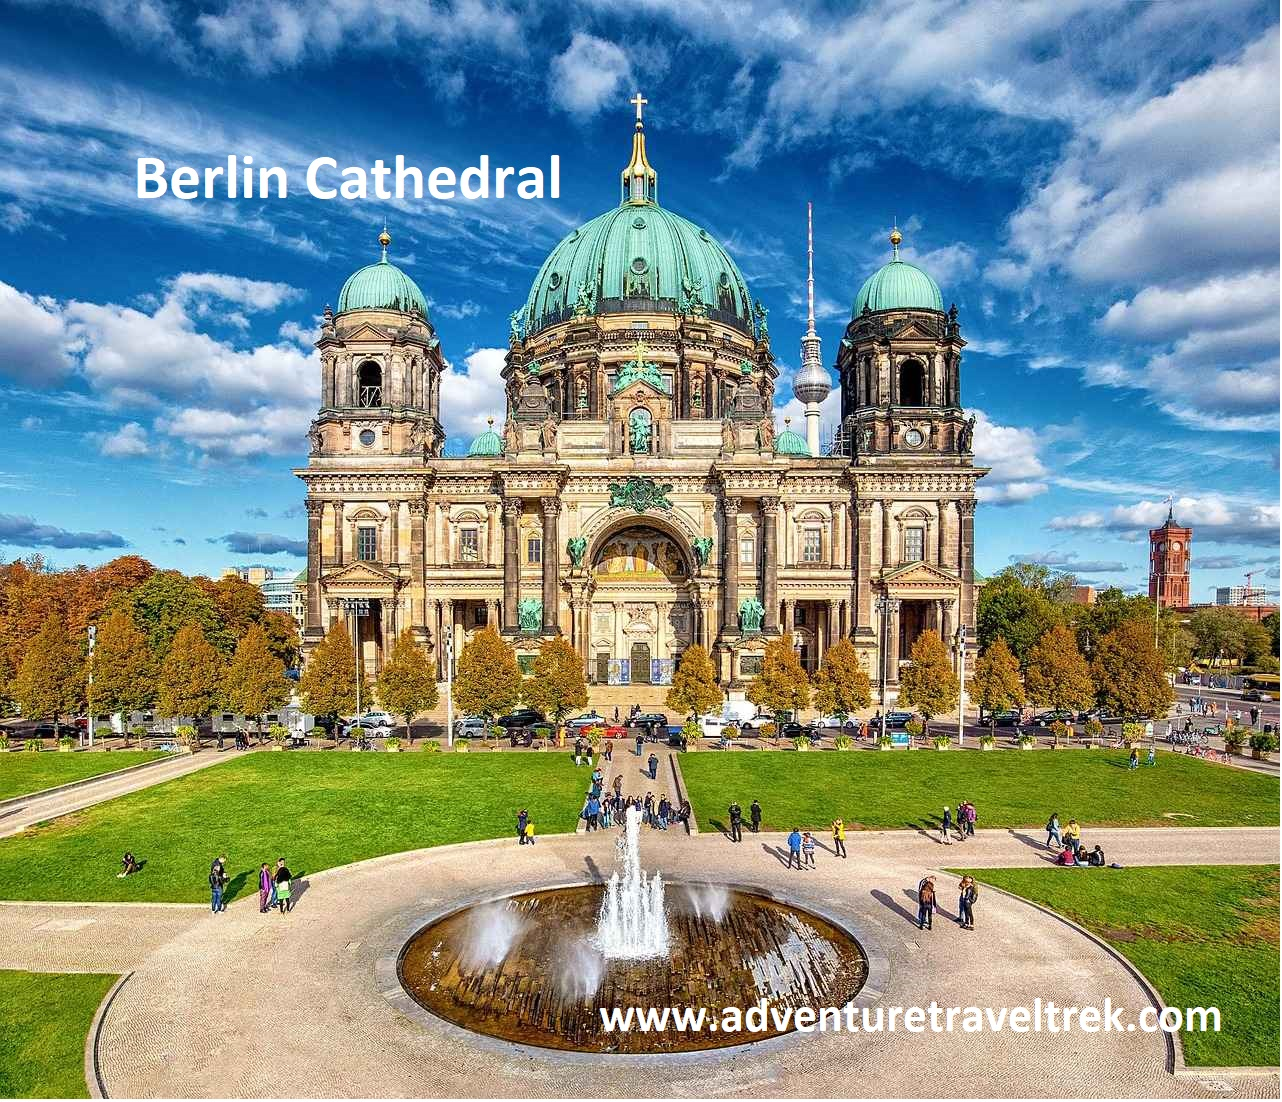 Berlin Cathedral a great place to see in Europe